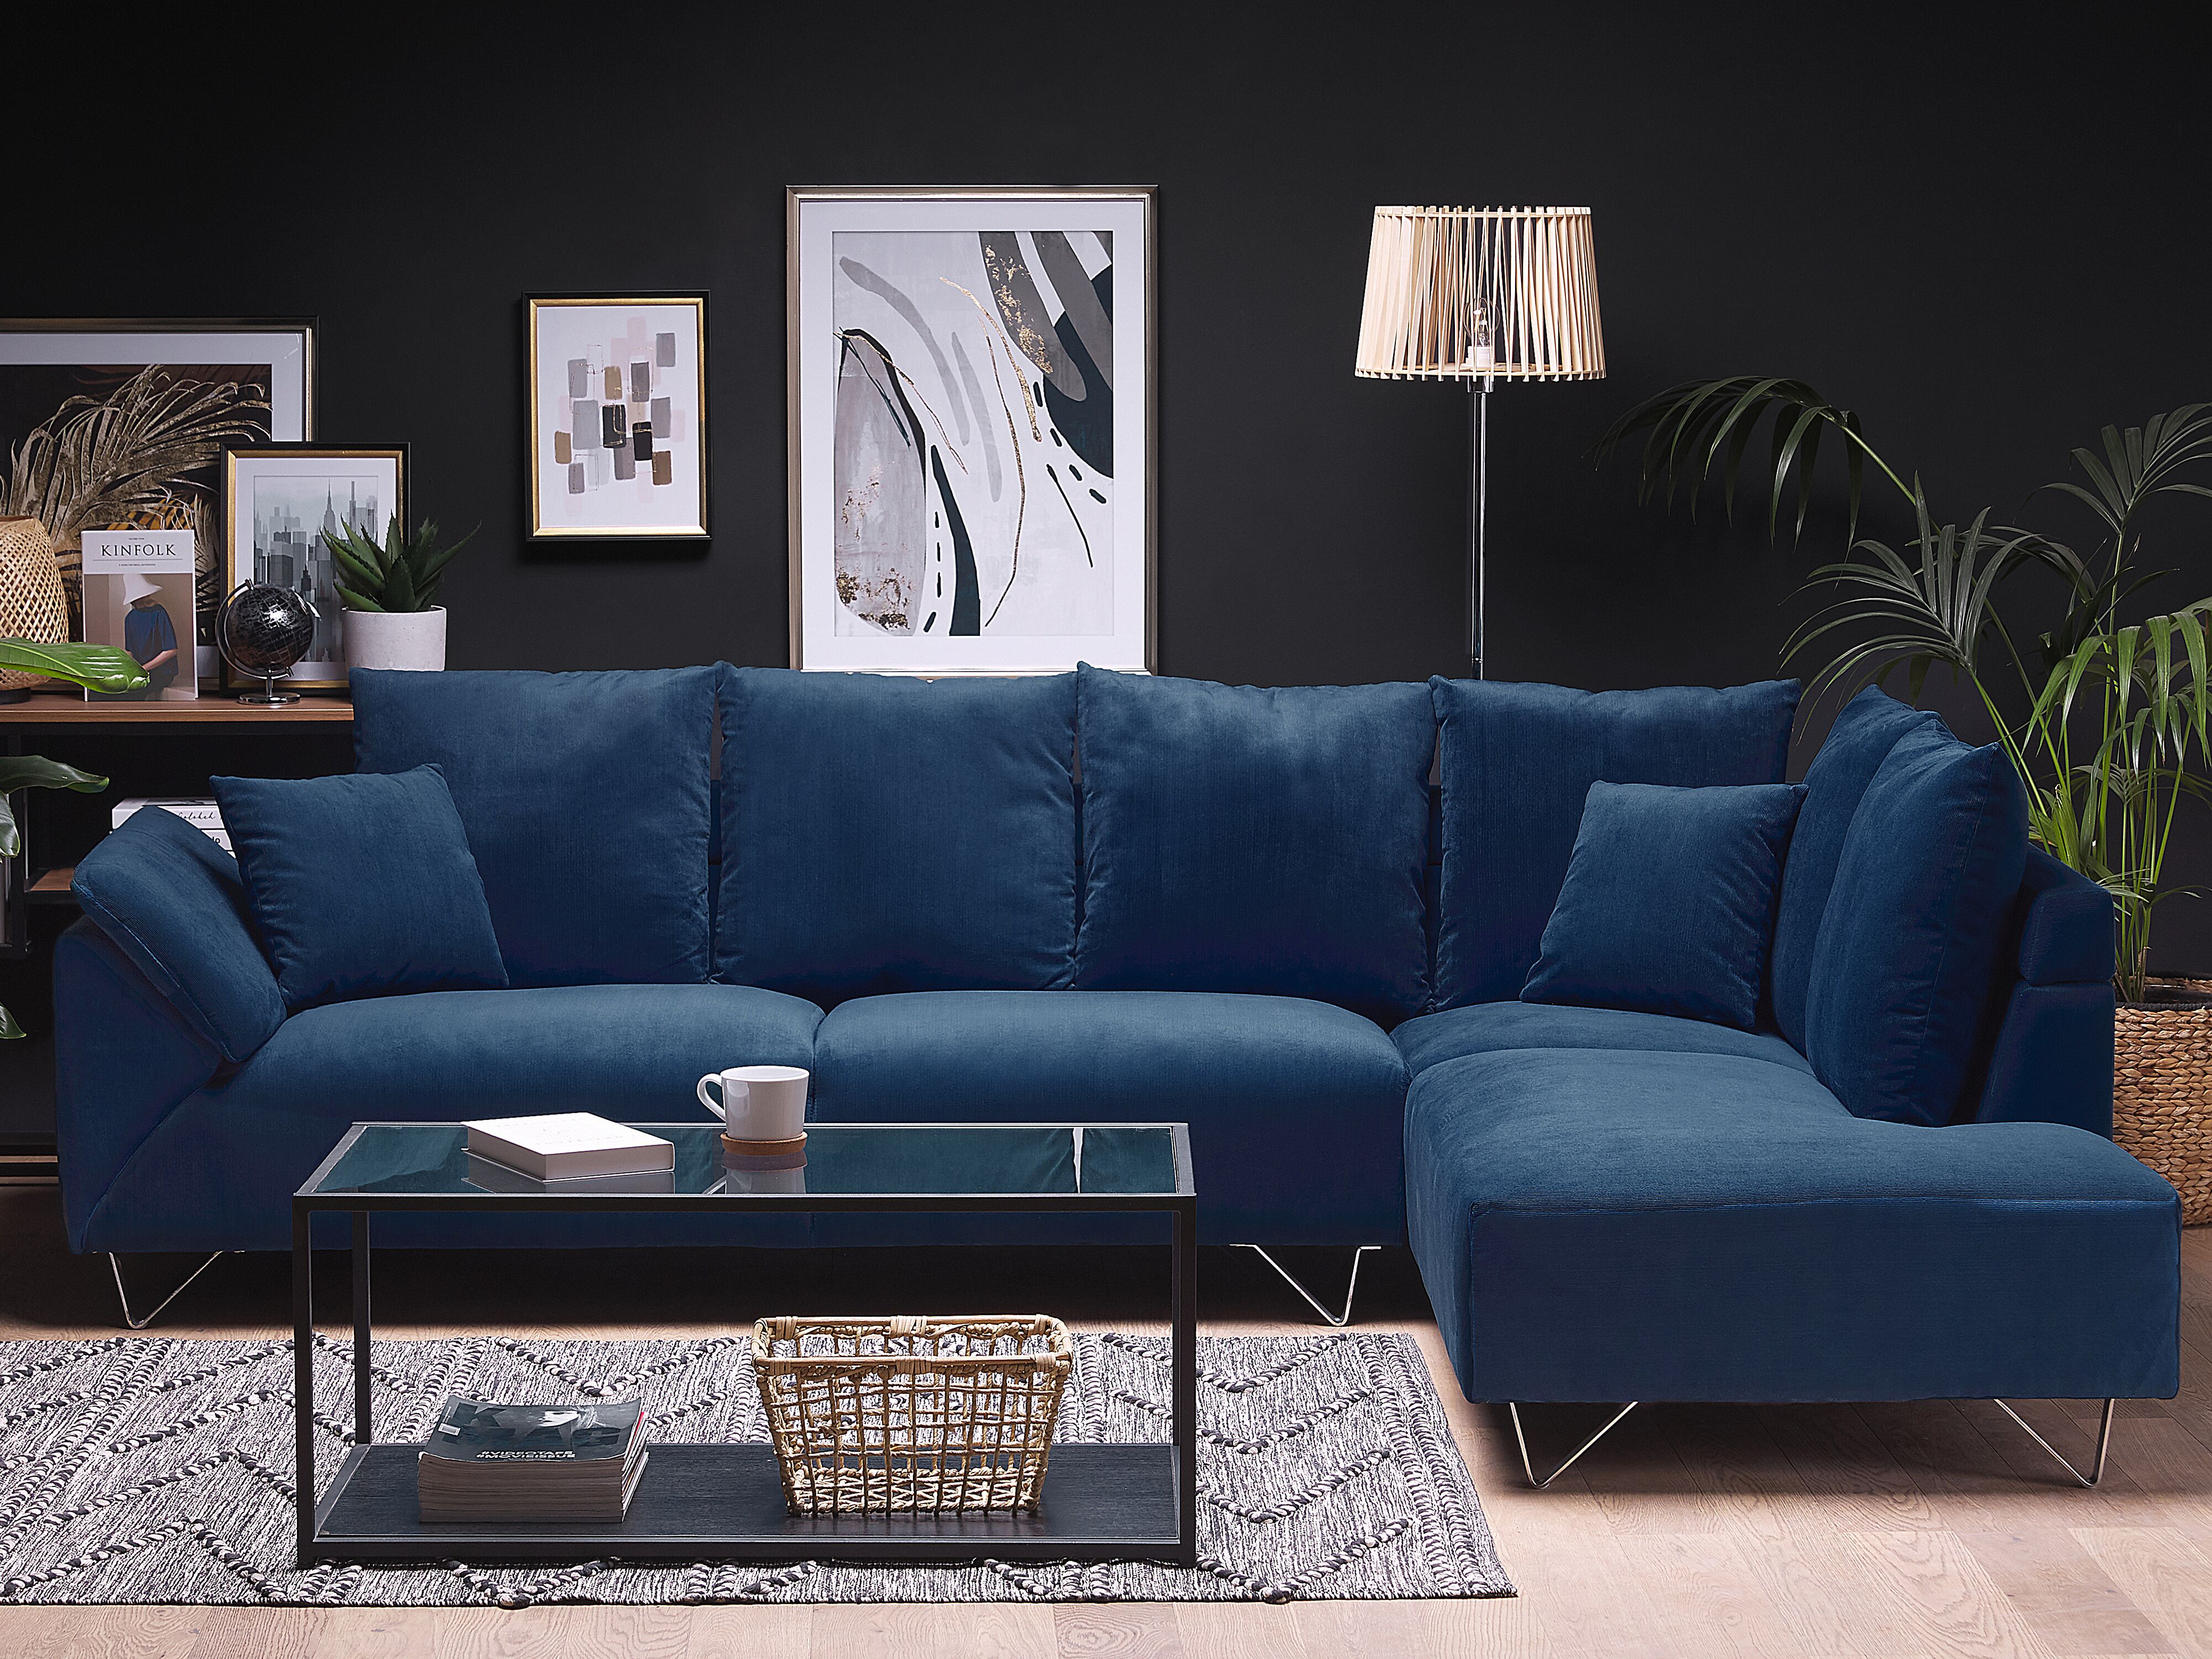 Left Hand Corduroy Corner Sofa Navy Blue Lunner Ex Factury At Fair Price Right To Return Within 100 Days